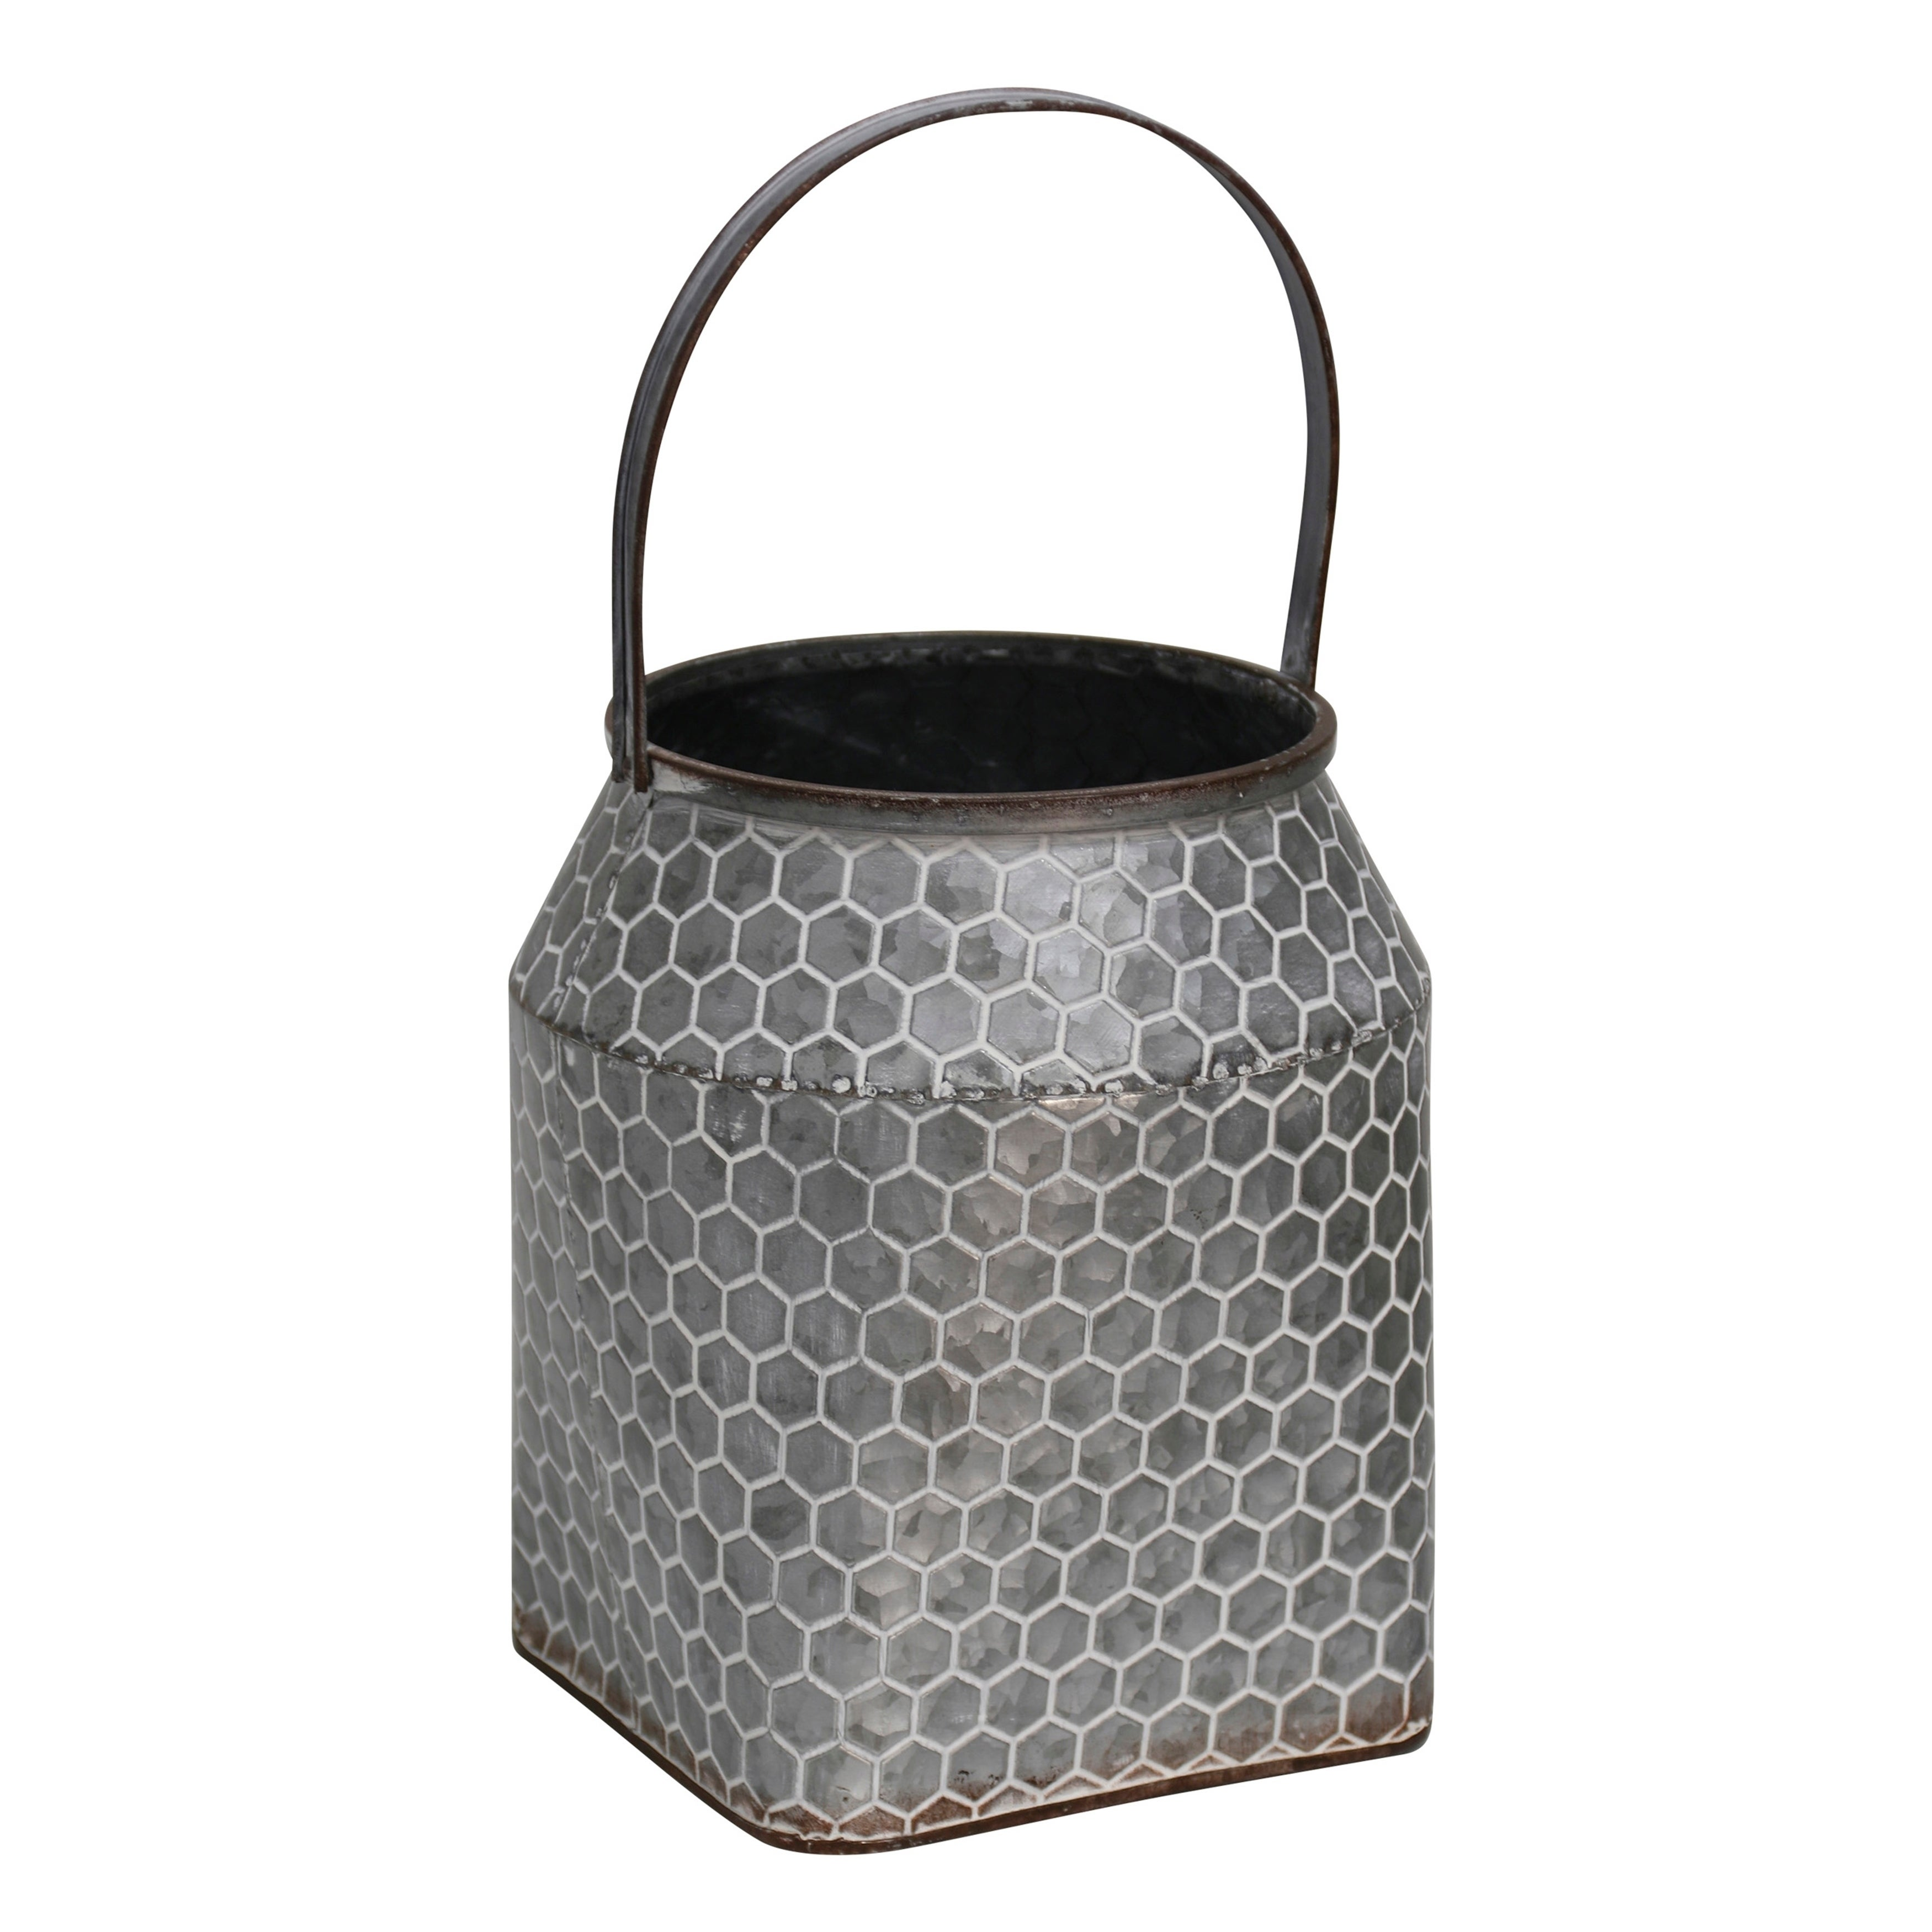 Tall Hive Pattern Milk Pail Galvanized Metal Vase with Handle